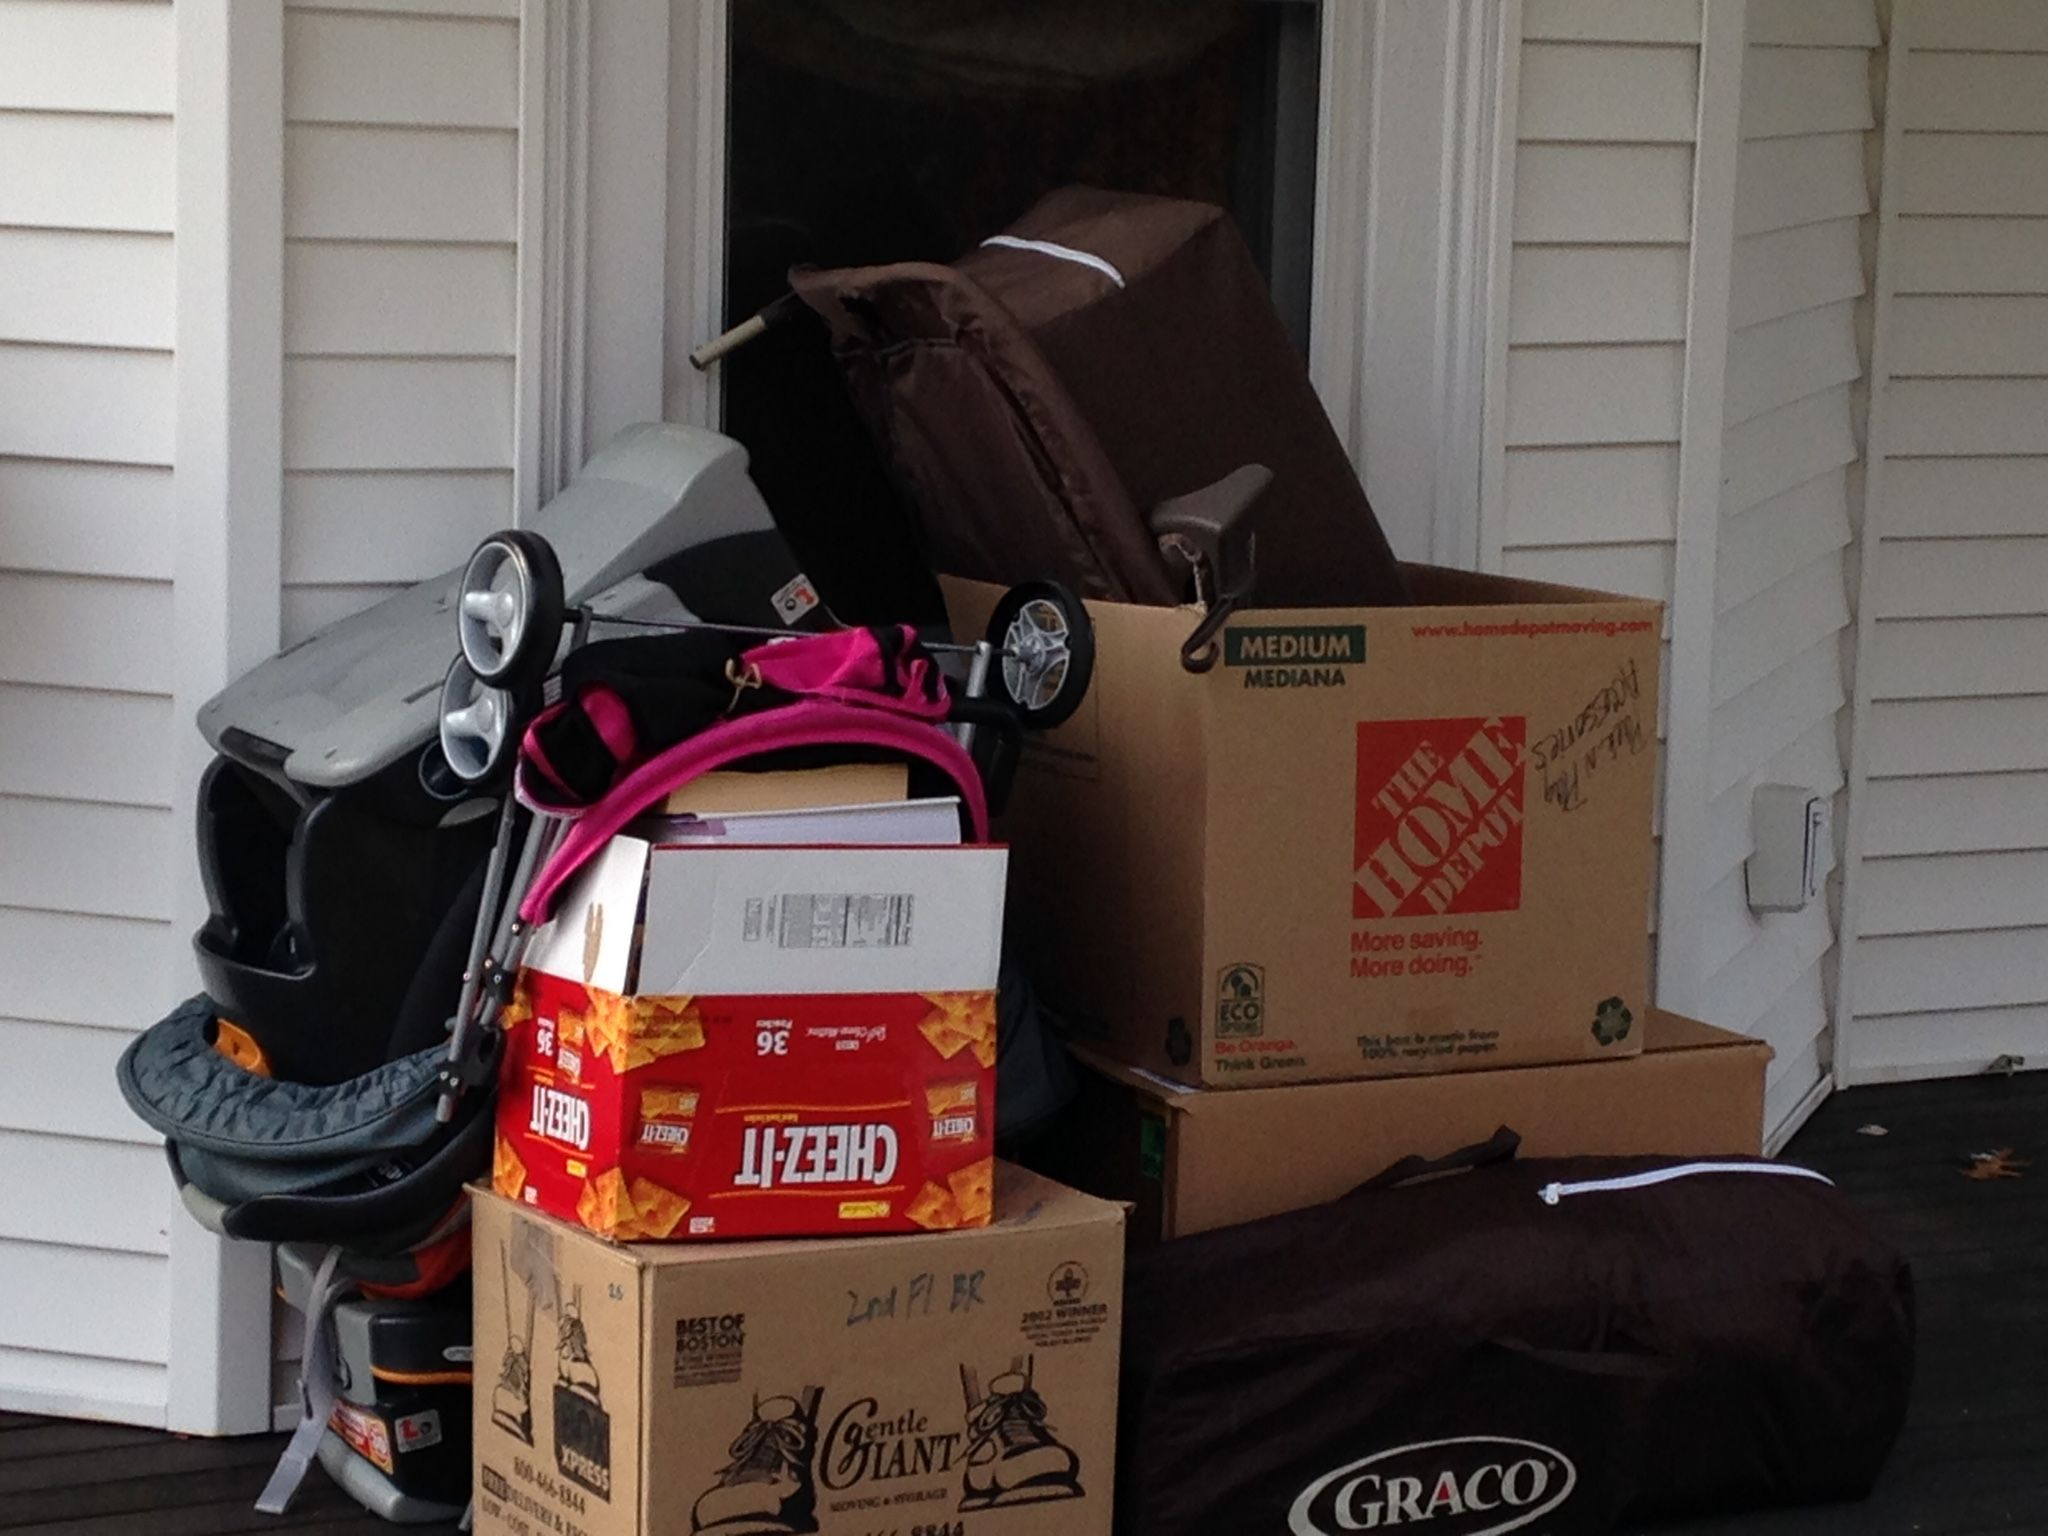 Donating to Cradles to Crayons Baby strollers, Graco